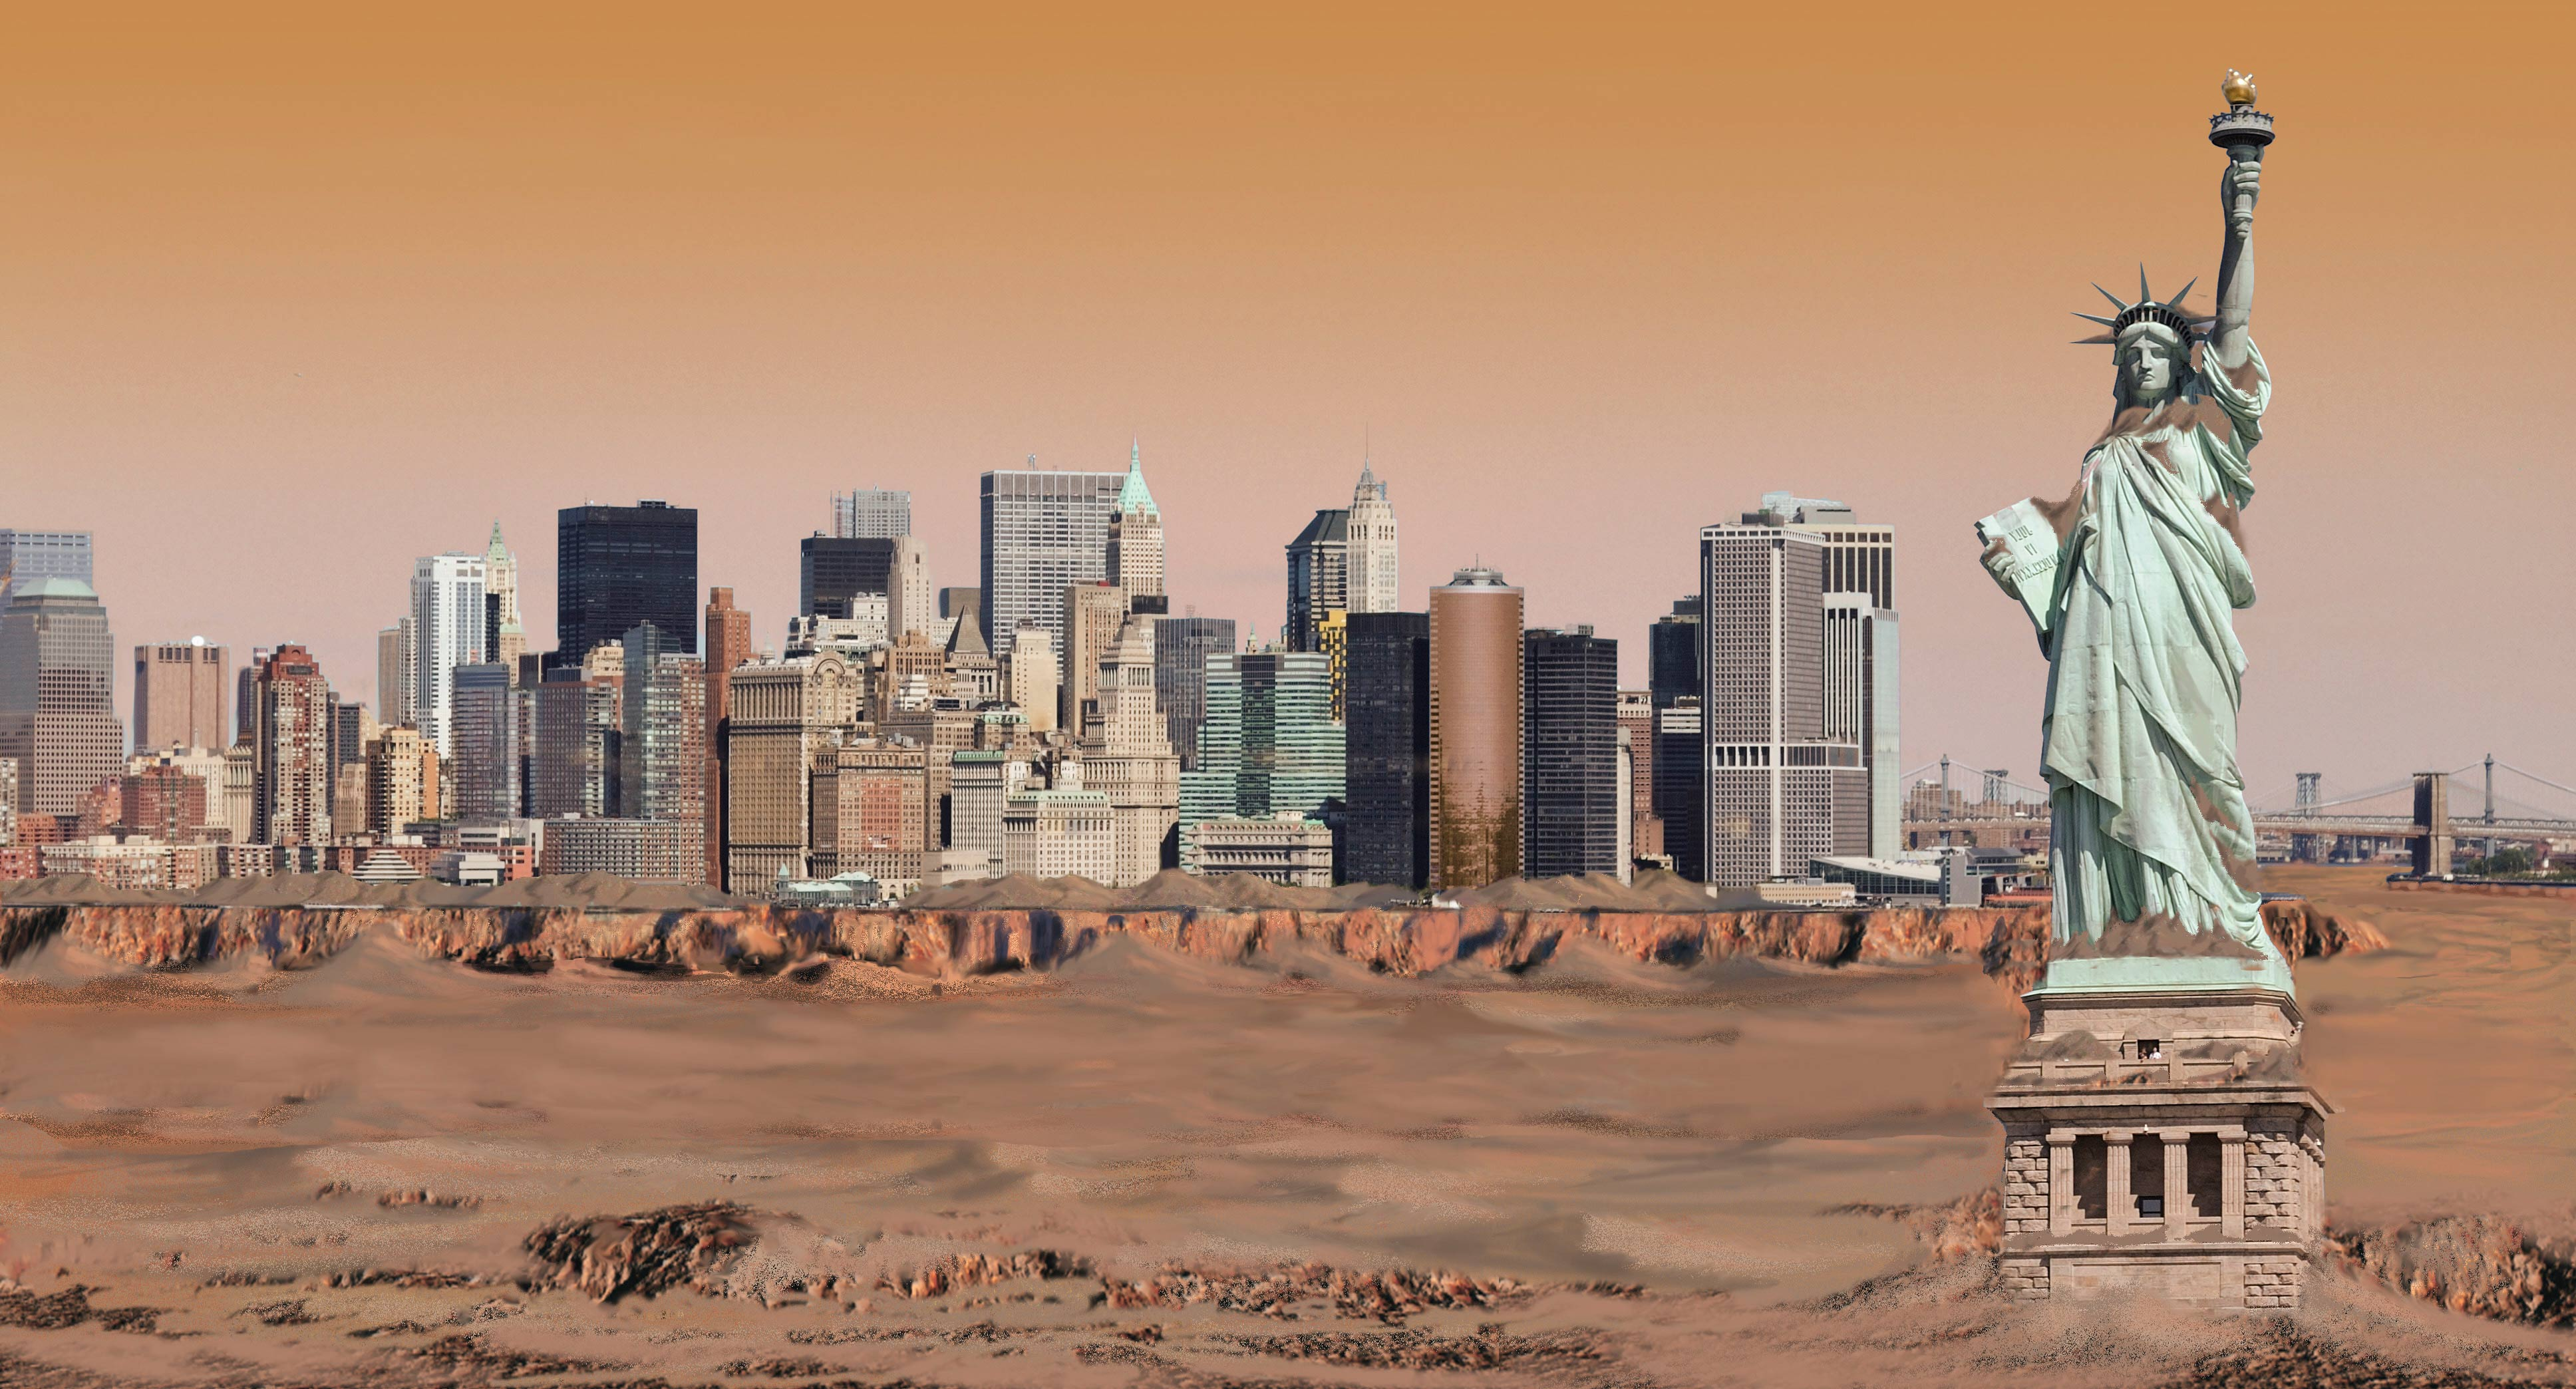 New York City Seen Through Mars' Atmosphere